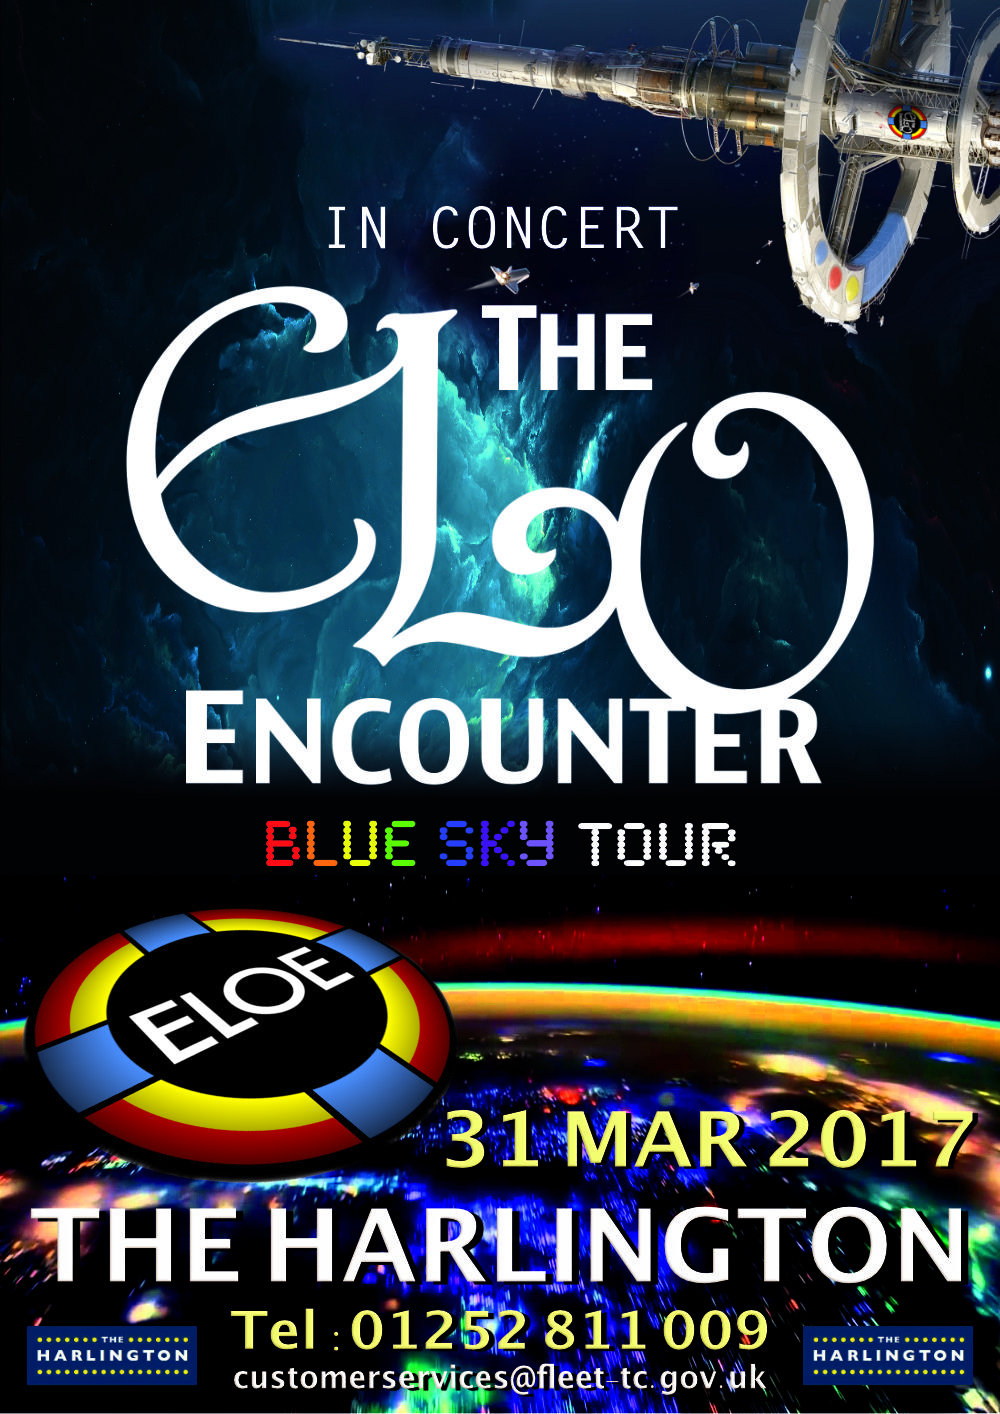 The Harlington - ELO Encounter Poster